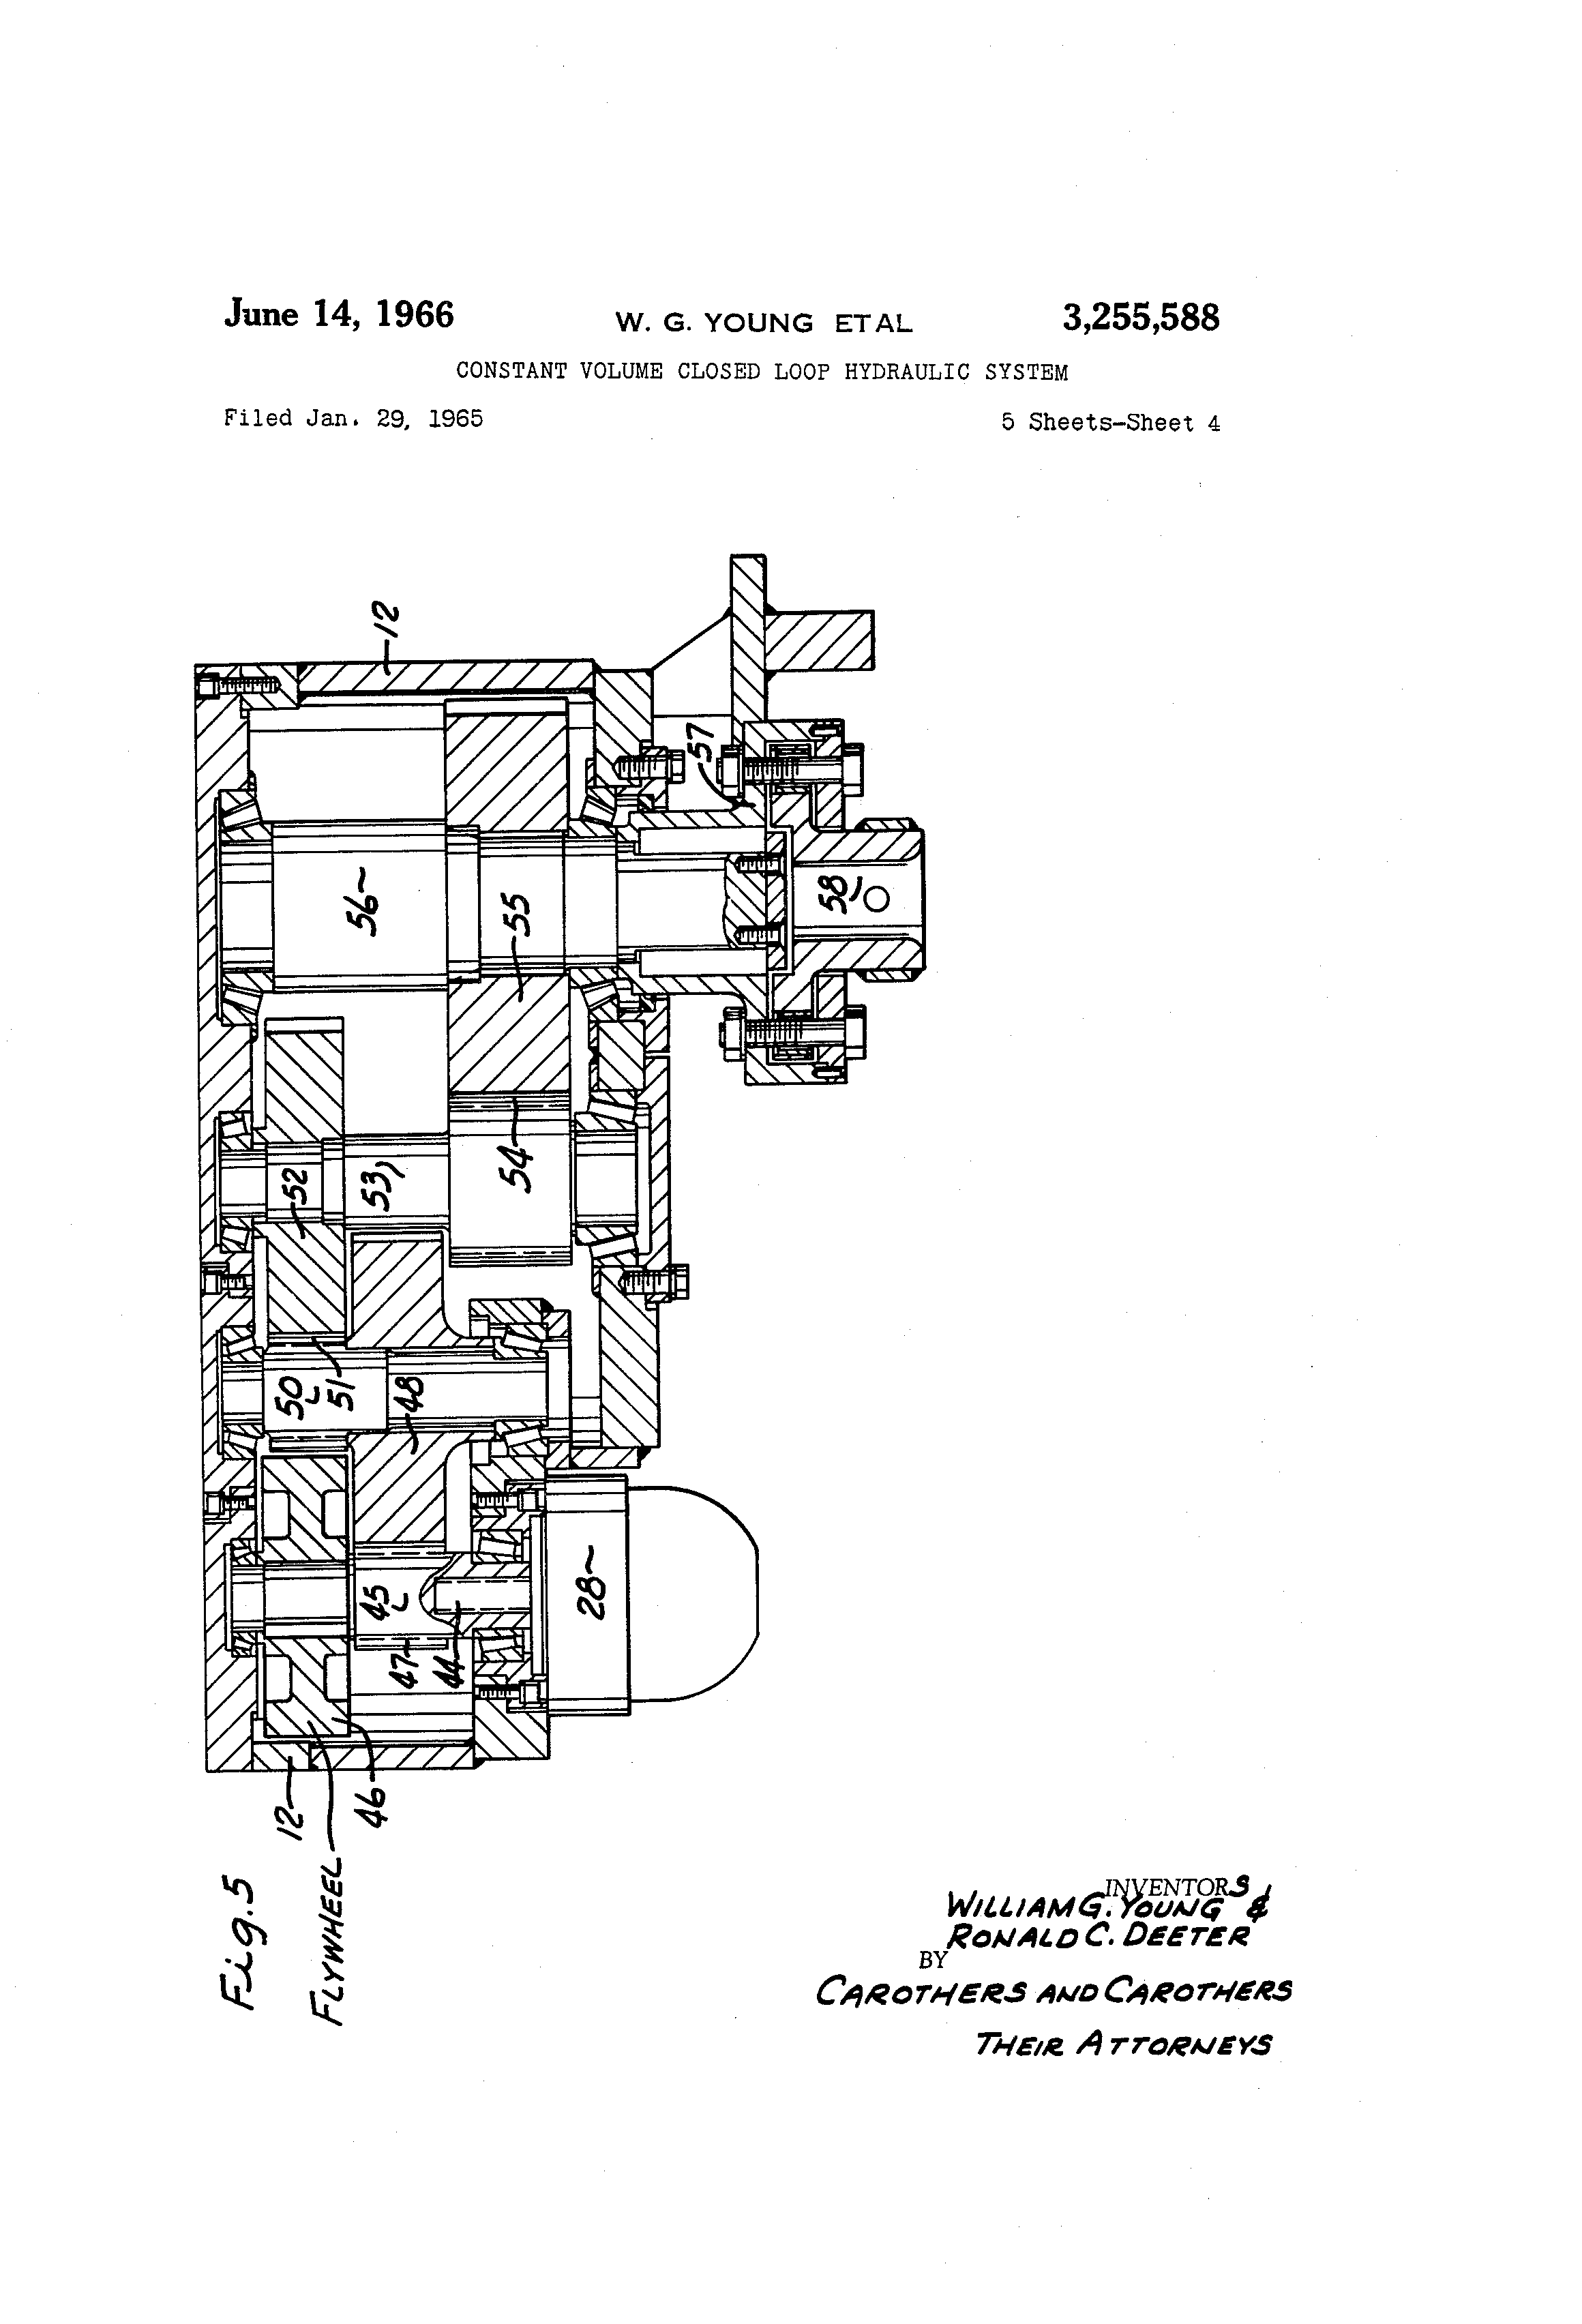 patent us3255588 - constant volume closed loop hydraulic system